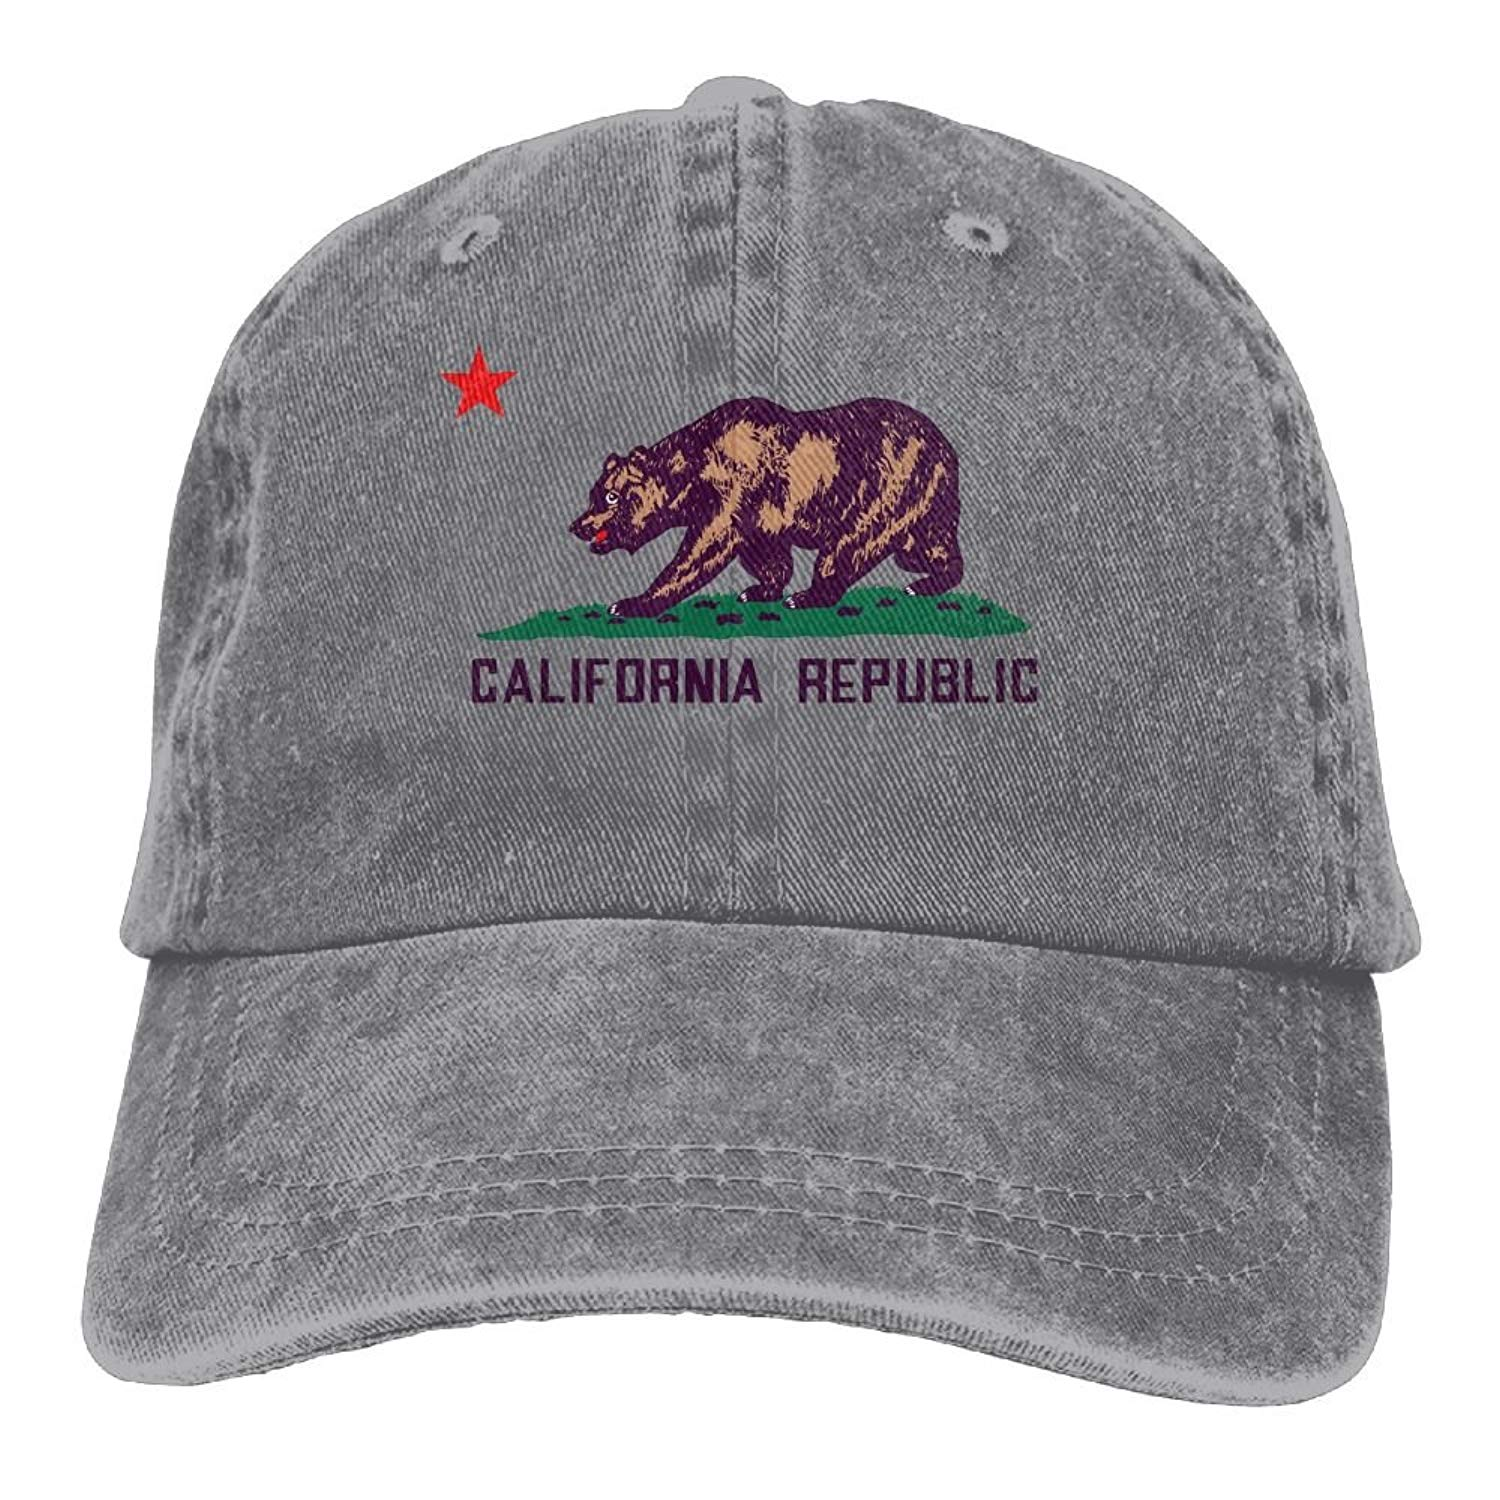 d6ceca88fe383 Get Quotations · Adjustable Cowboy Style Baseball Cap Hat California  Republic Grizzly Bears Unisex Vintage Washed Dyed Cotton Plain